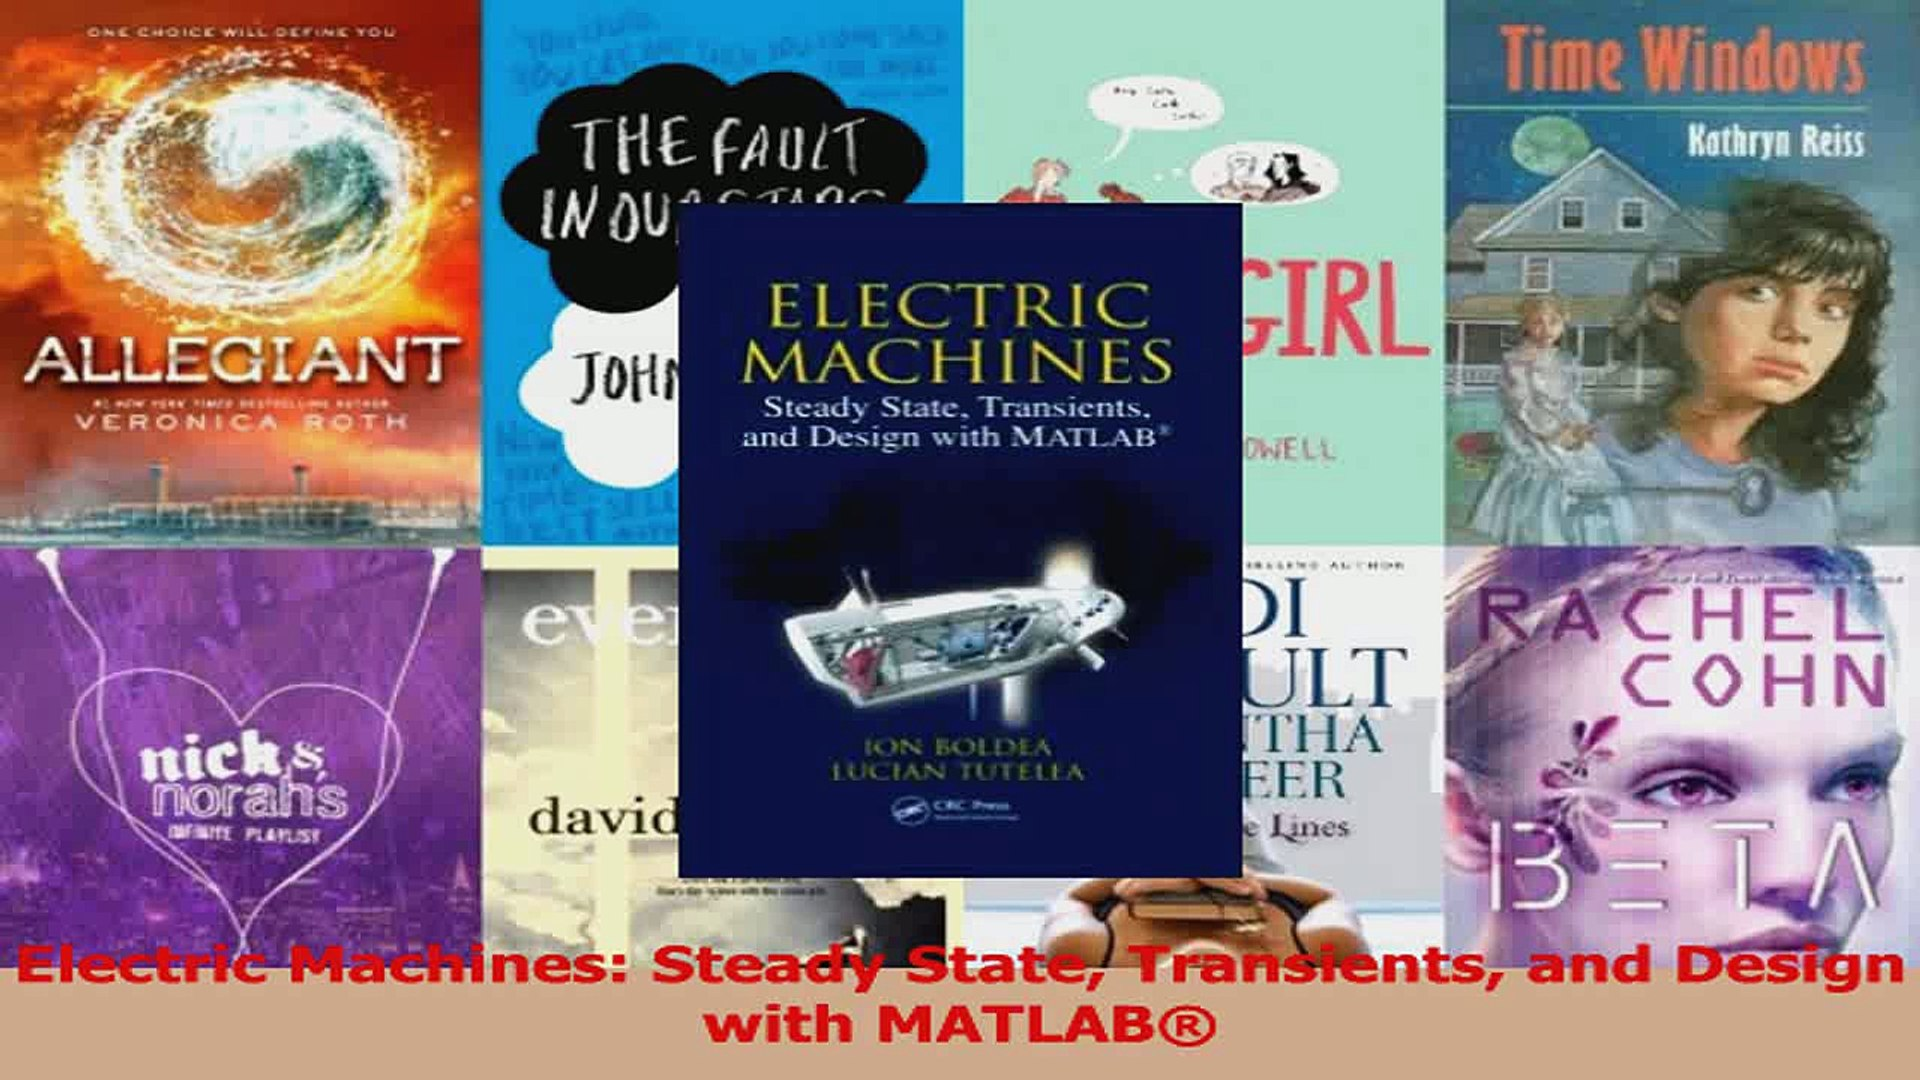 Electric machines : steady state, transients, and design with MATLAB